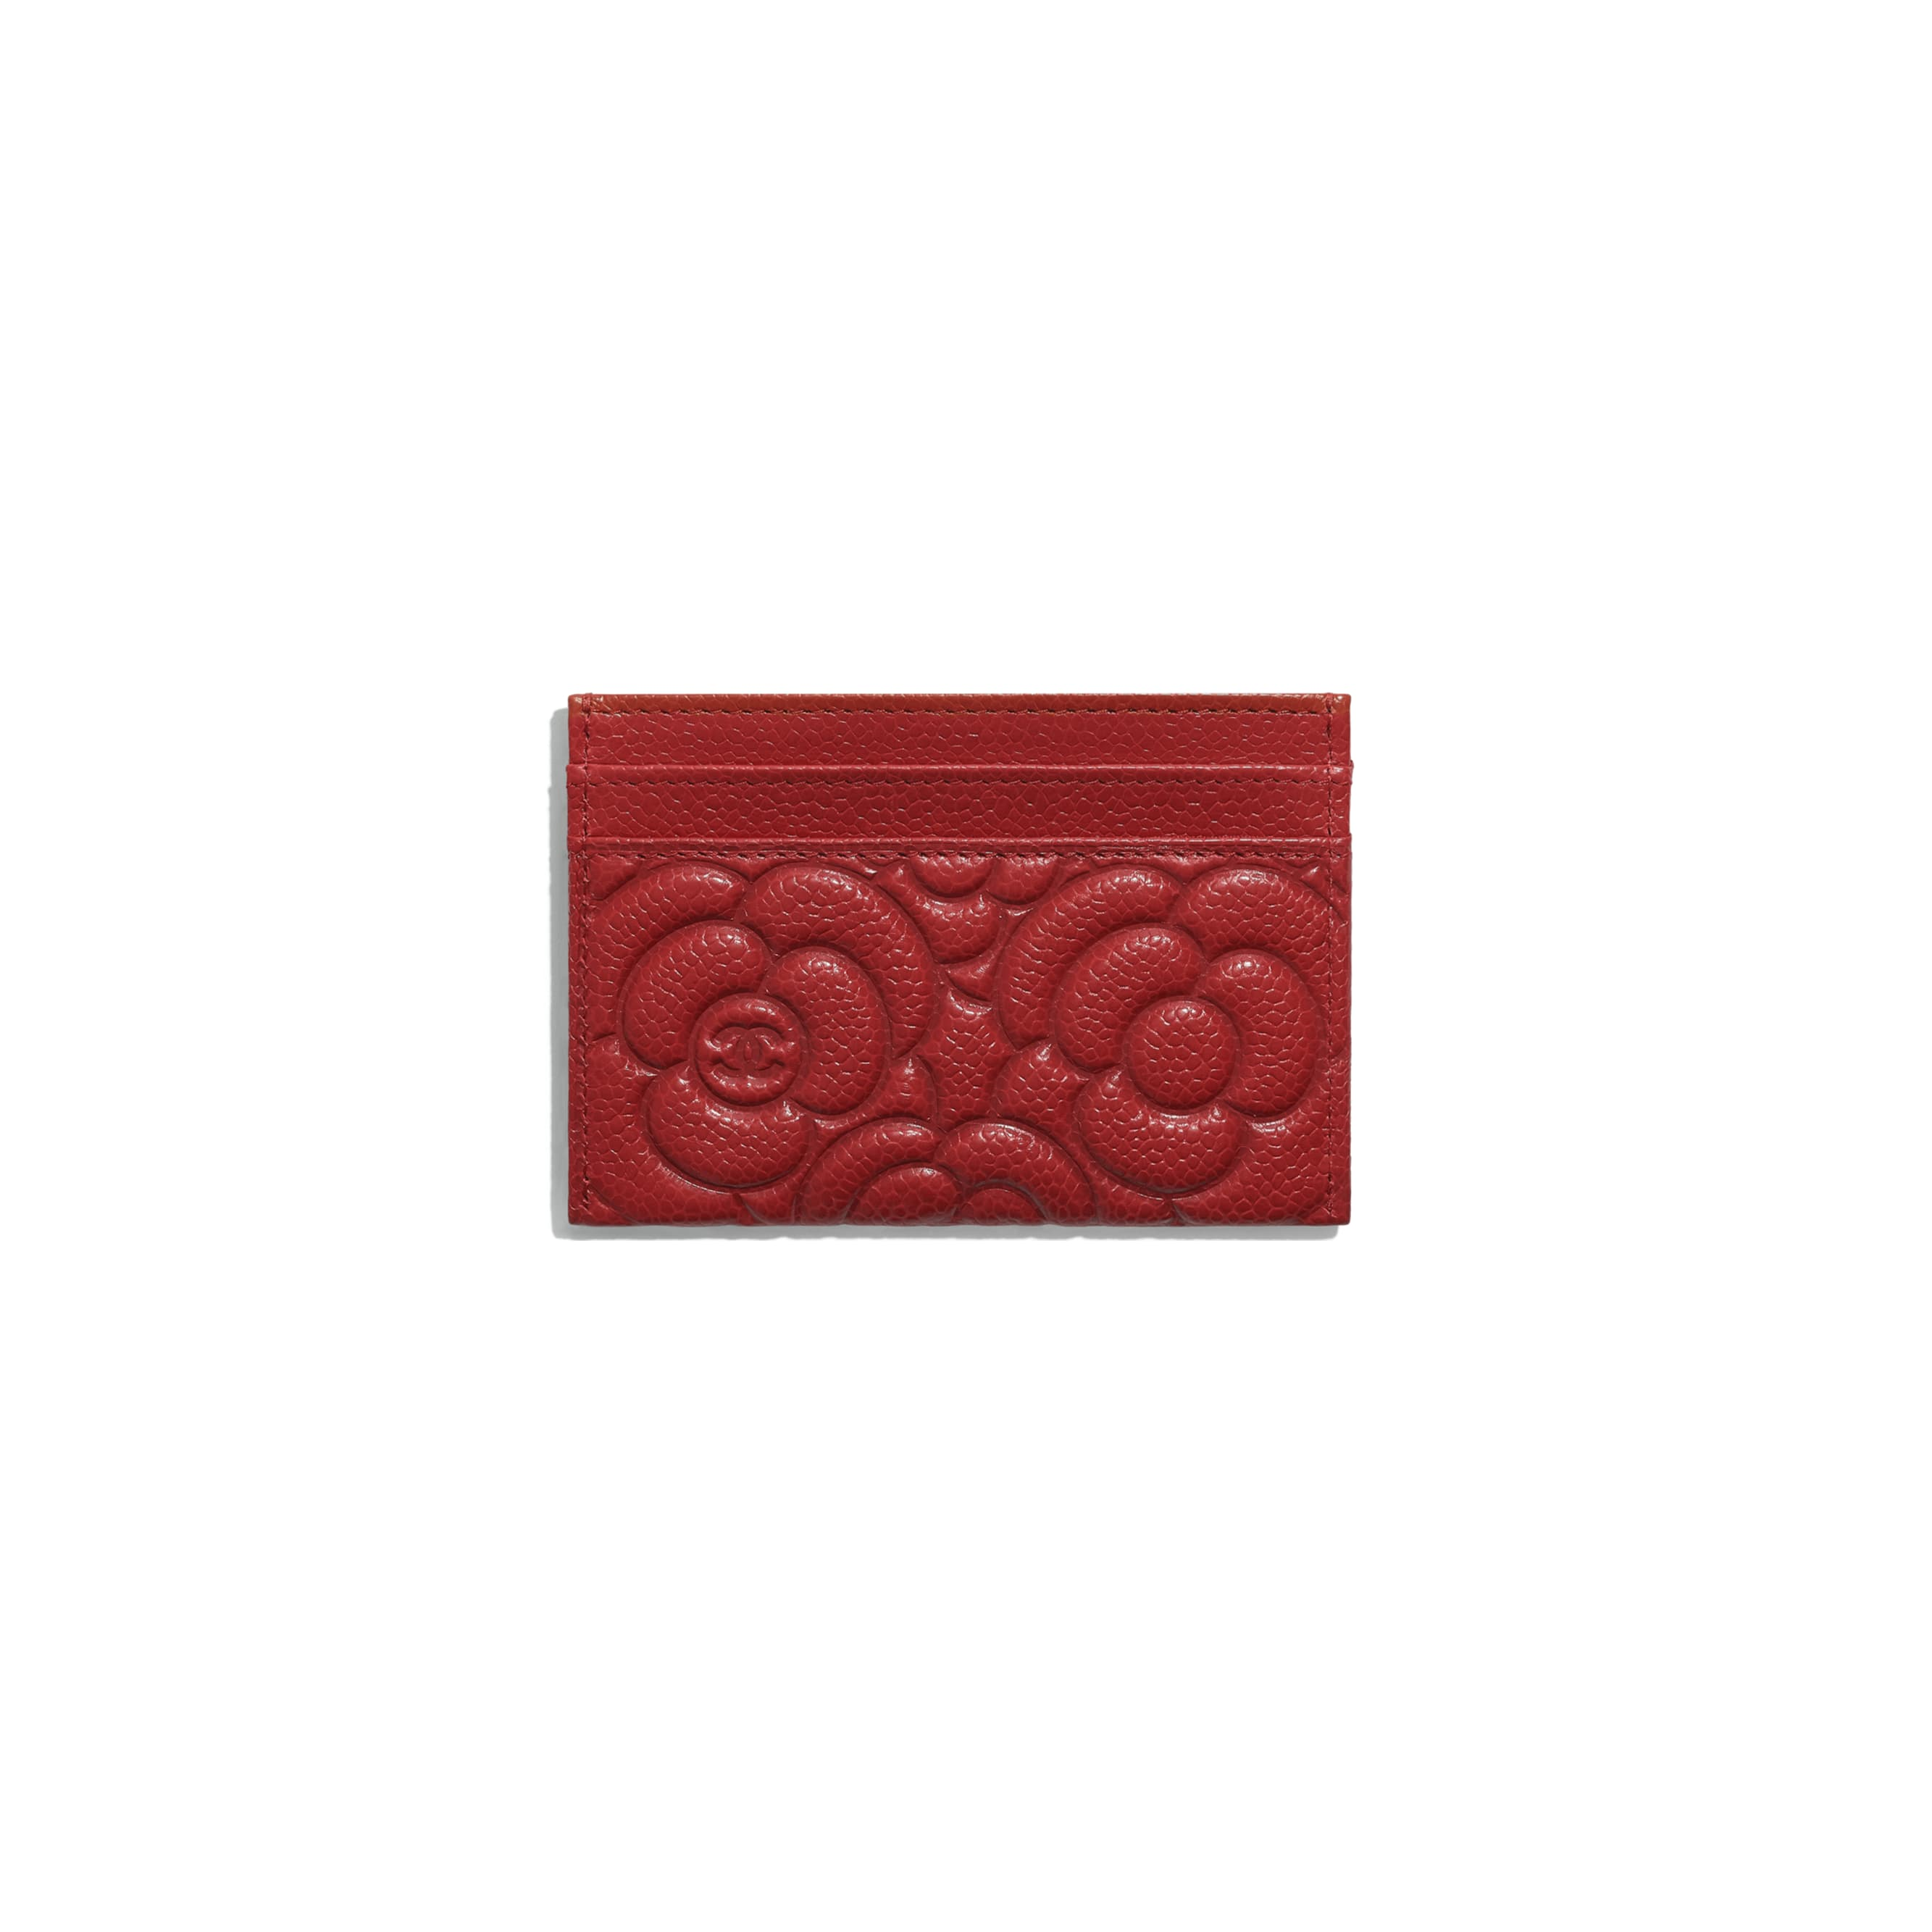 Card Holder - Red - Grained Shiny Calfskin & Gold-Tone Metal - Alternative view - see standard sized version